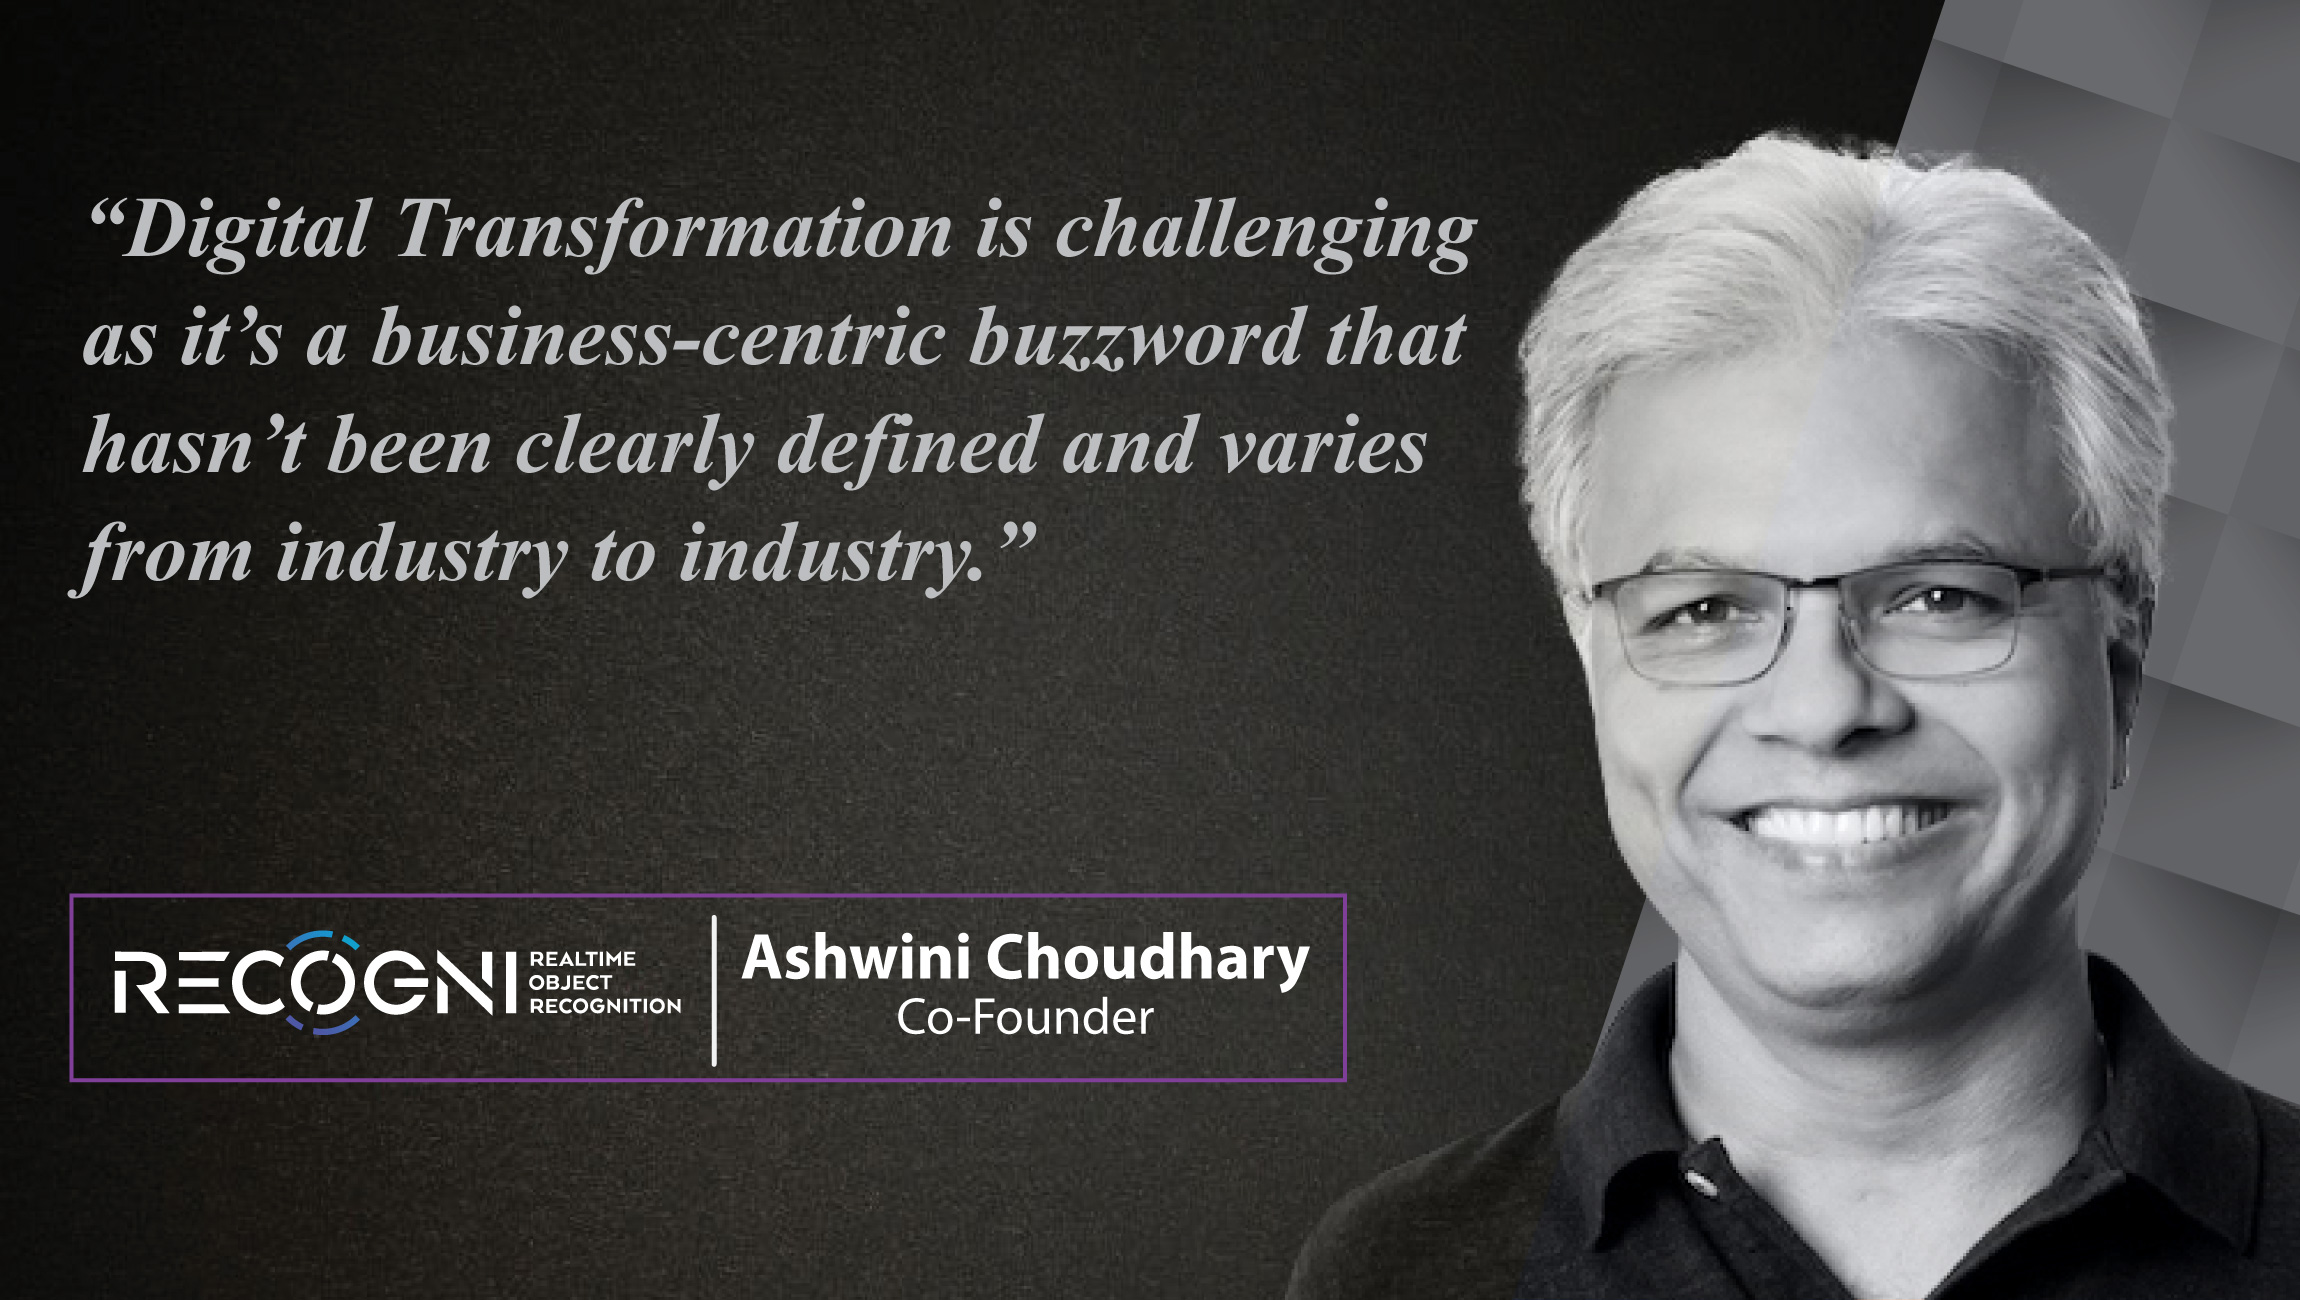 AiThority Interview with Ashwini Choudhary, Co-Founder at Recogni